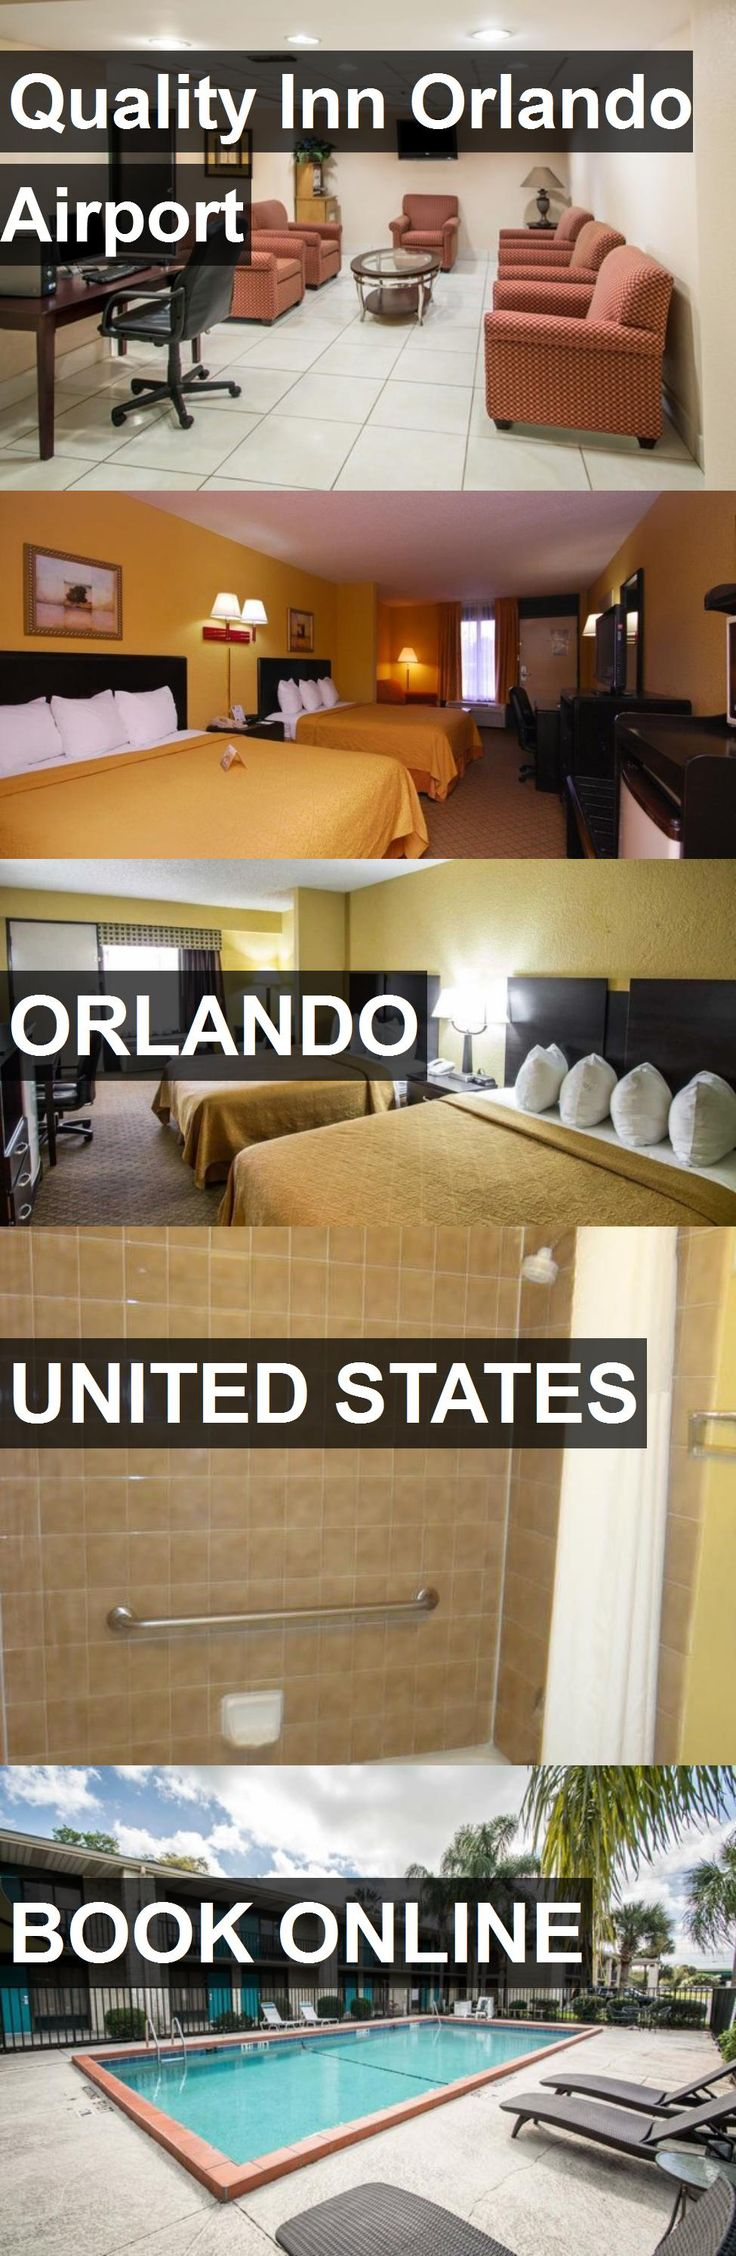 Hotel Quality Inn Orlando Airport in Orlando, United States. For more information, photos, reviews and best prices please follow the link. #UnitedStates #Orlando #QualityInnOrlandoAirport #hotel #travel #vacation